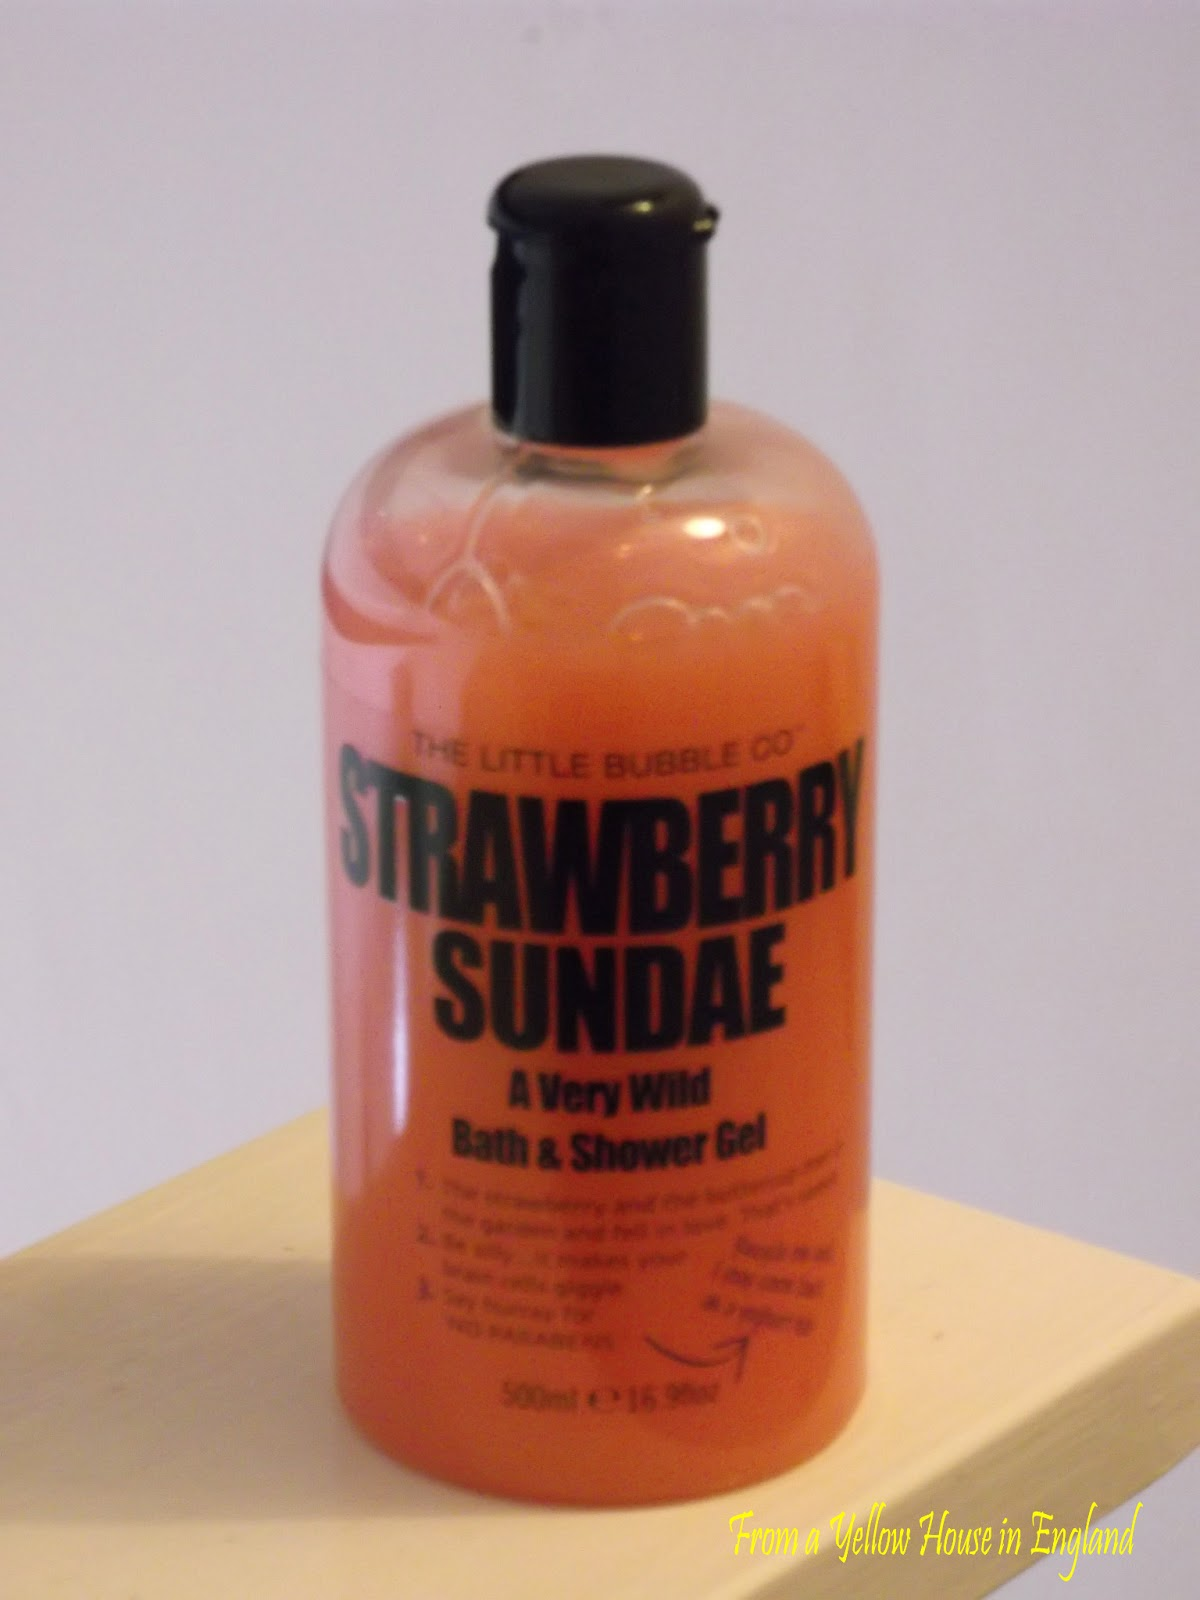 Can Shower Gel Be Used As Bubble Bath From A Yellow House The Little Bubble Co Review